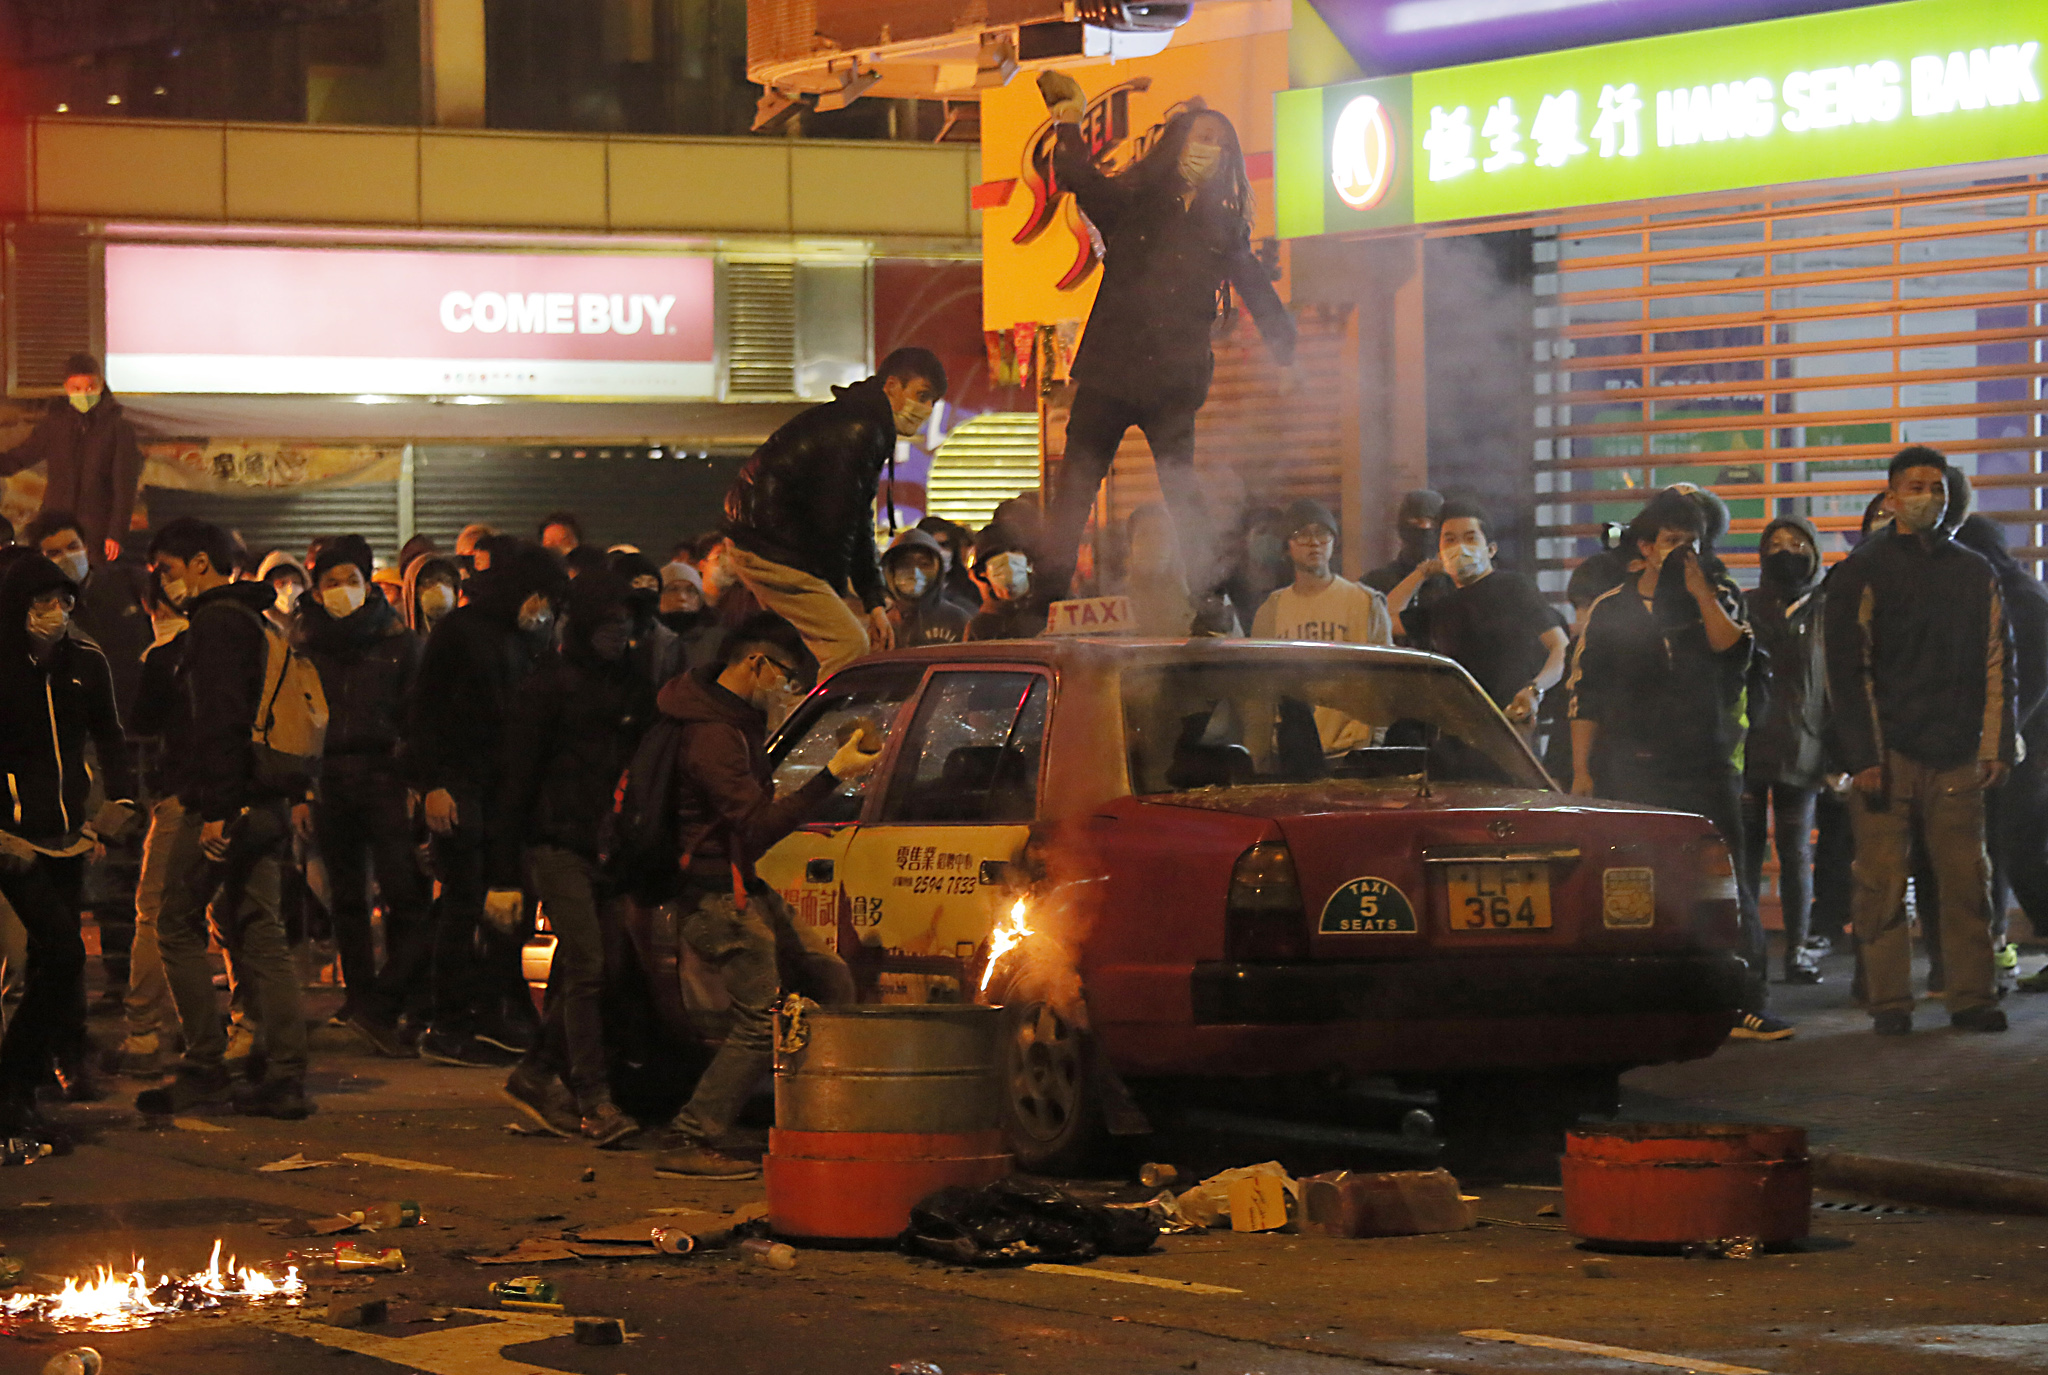 Rioters throw bricks at police in Mong Kok district of Hong Kong, Tuesday, Feb. 9, 2016. Hong Kong's Lunar New Year celebration descended into chaotic scenes as protesters and police clashed over a street market selling fish balls and other local holiday delicacies. (AP Photo/Vincent Yu)